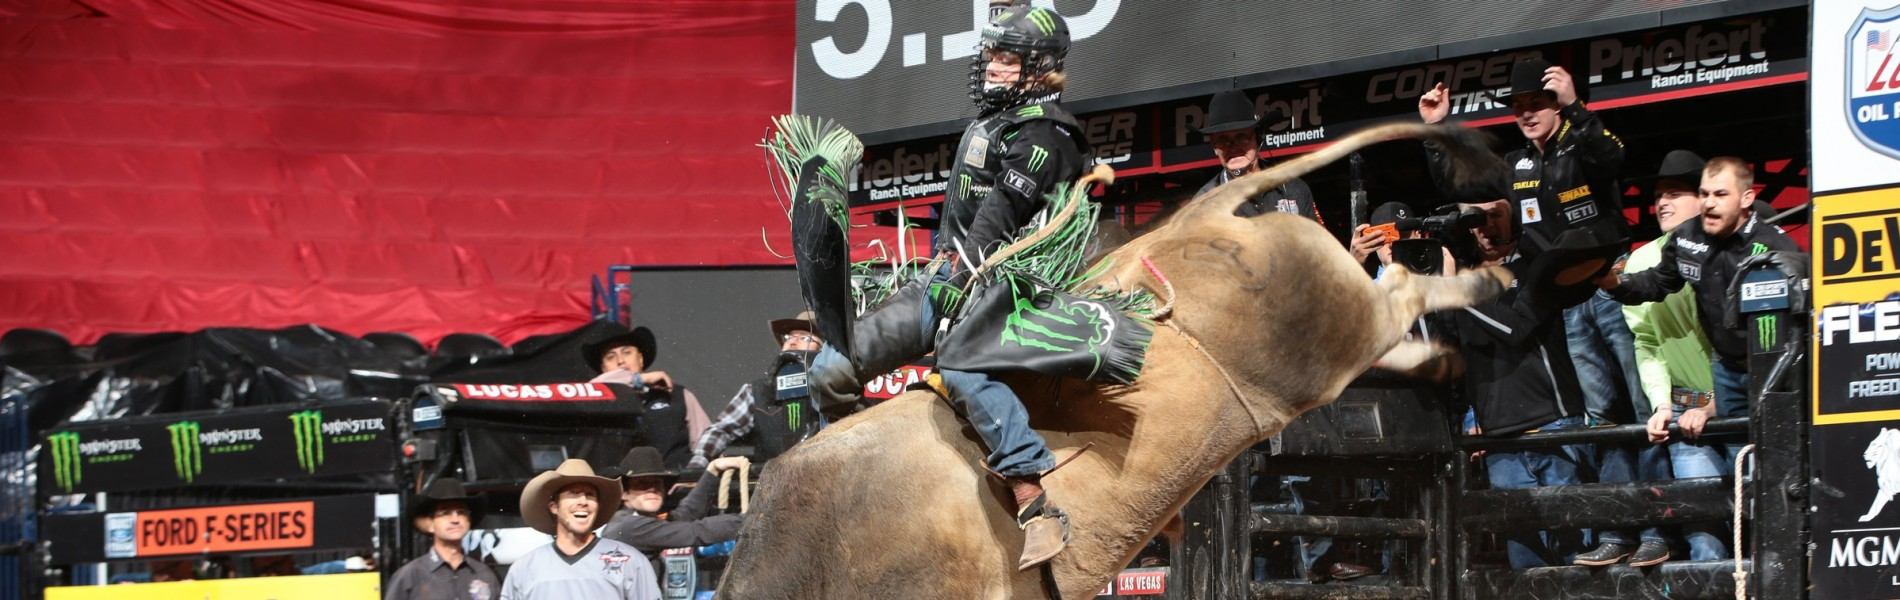 Derek Kolbaba rides D&H Cattle Co./Buck Cattle Co.'s SweetPro's Bruiser for 92 during the championship round of the Oklahoma City Built Ford Tough series PBR